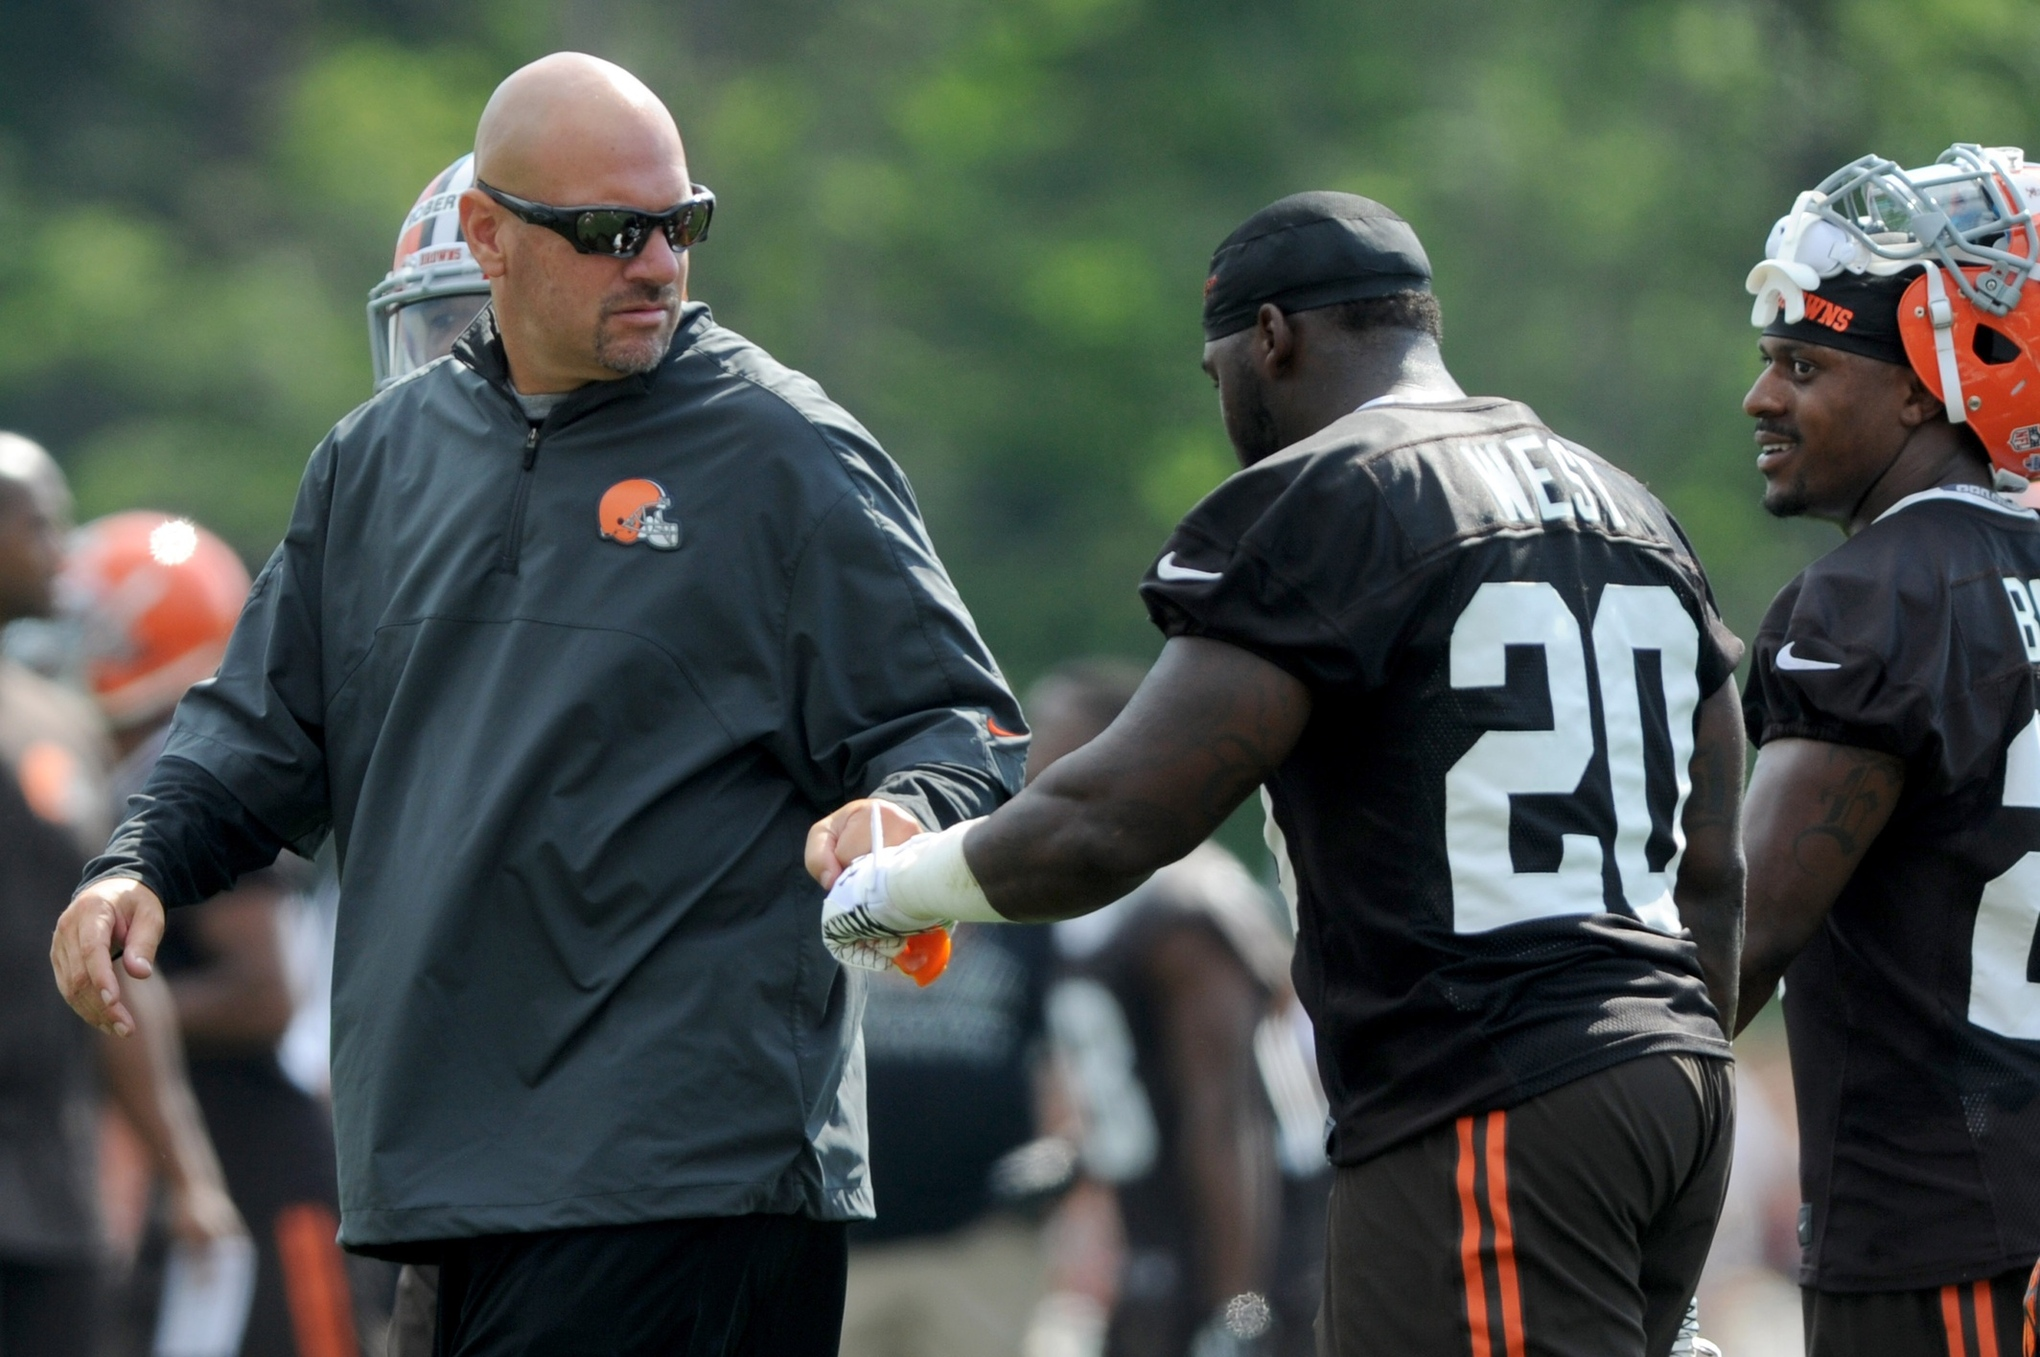 Berea, OH, USA; Cleveland Browns head coach Mike Pettine bumps fists with Cleveland Browns running back Terrance West (20) during training camp at the Cleveland Browns training facility.